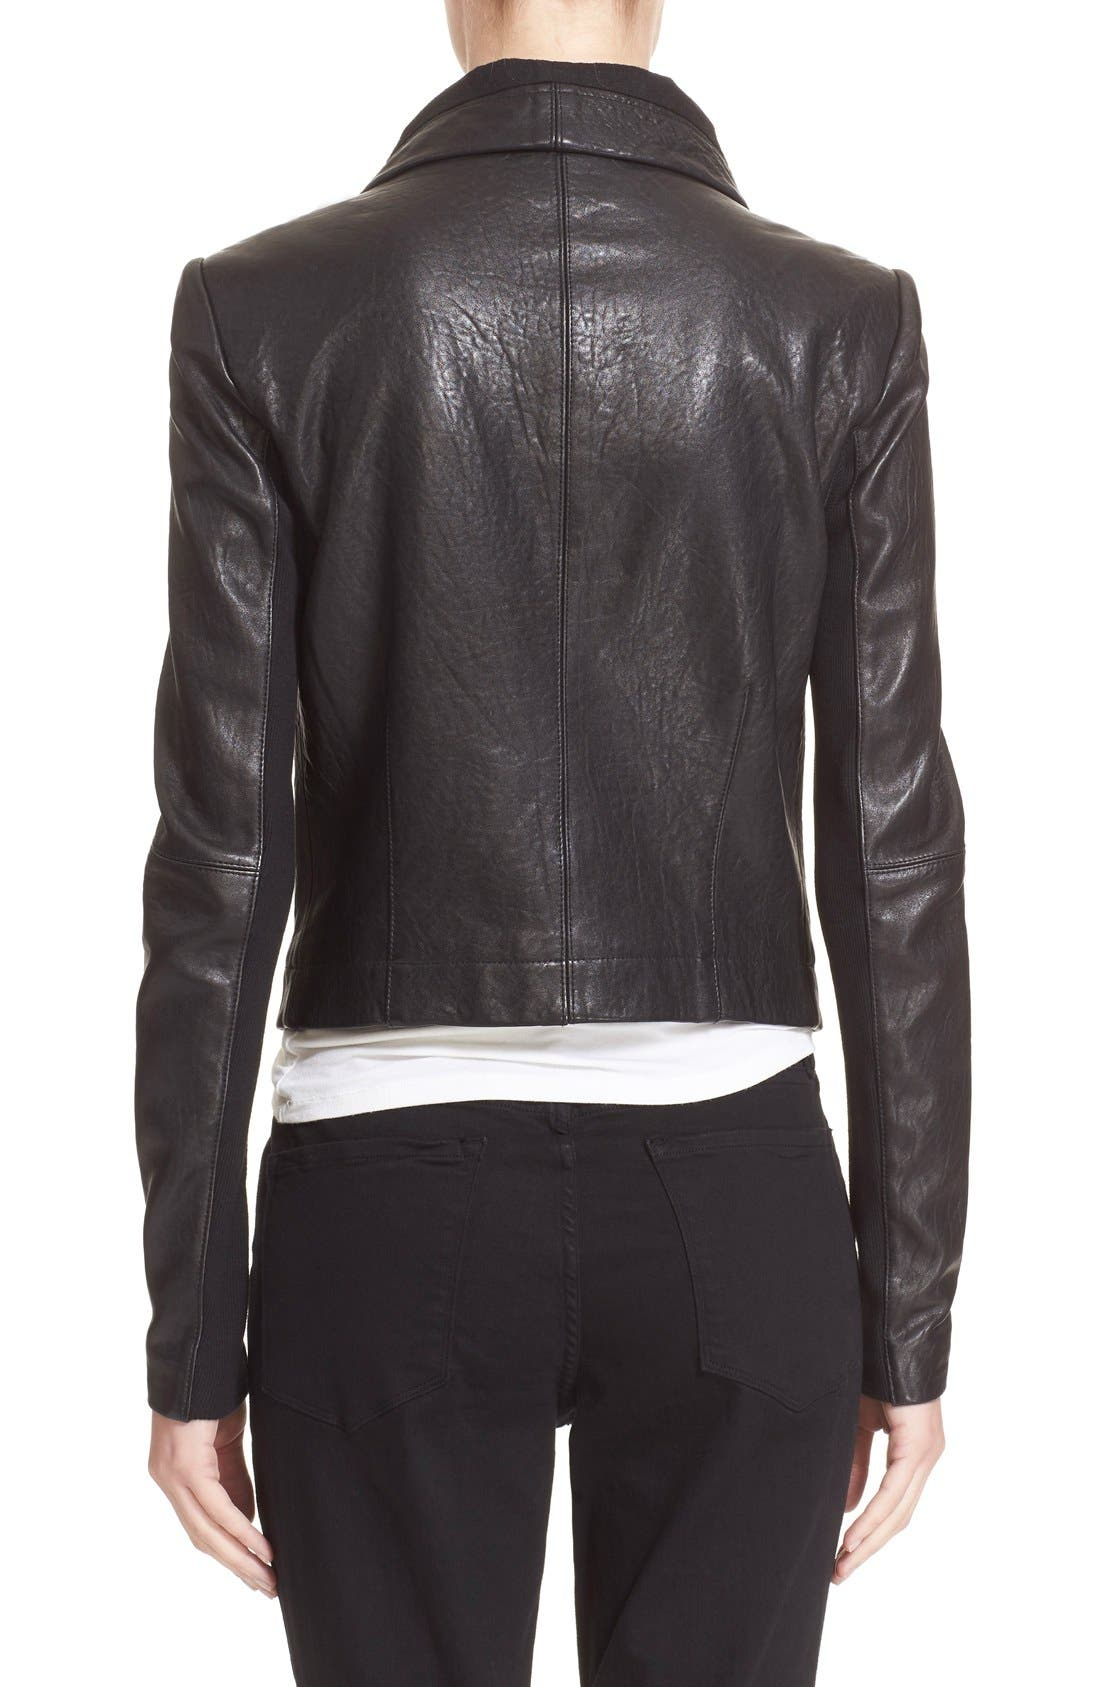 VEDA,                             'Max Classic' Leather Jacket,                             Alternate thumbnail 2, color,                             001